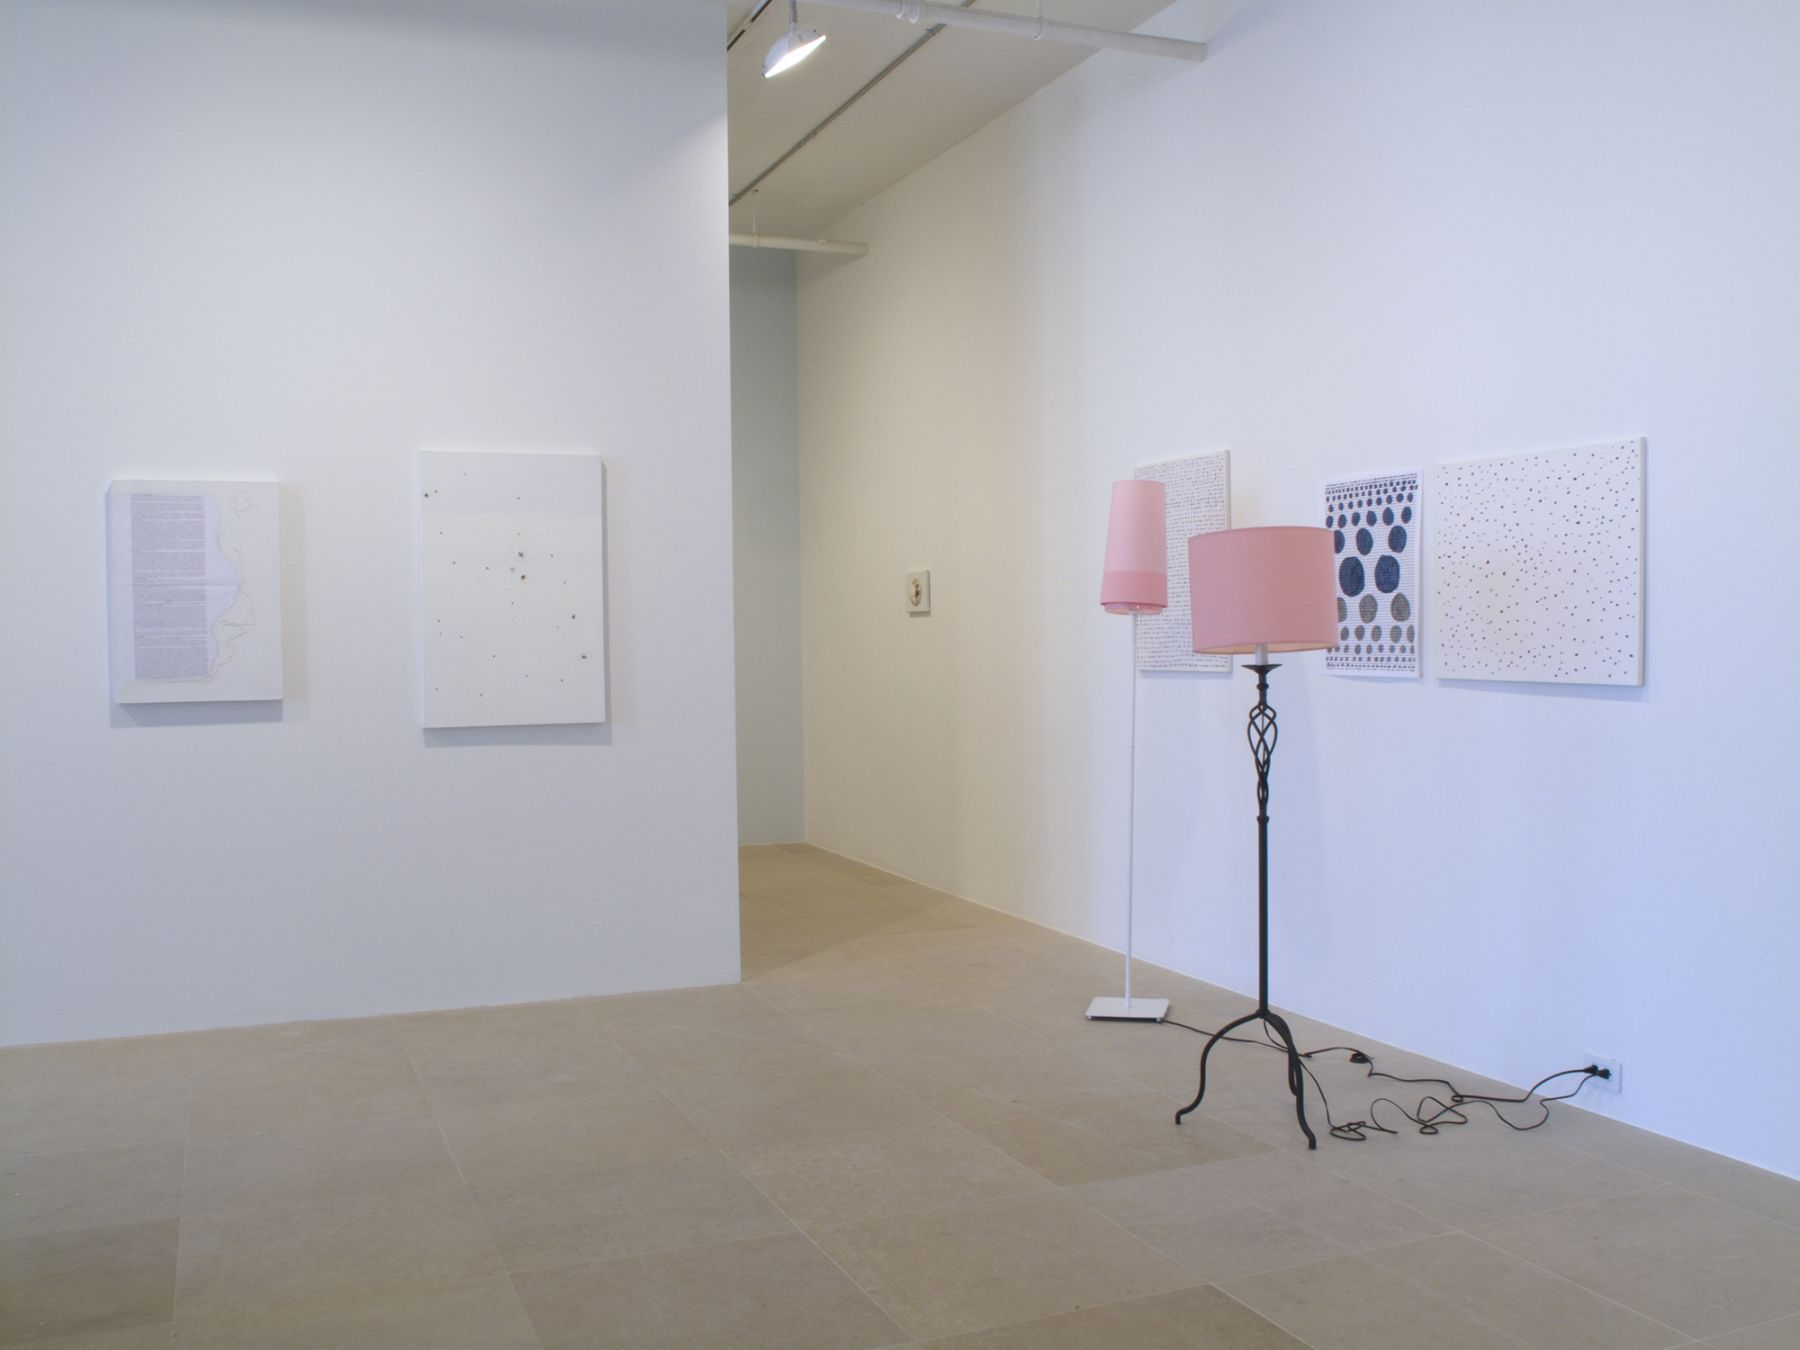 Installation view, The Pursuer, Greene Naftali, New York, 2011